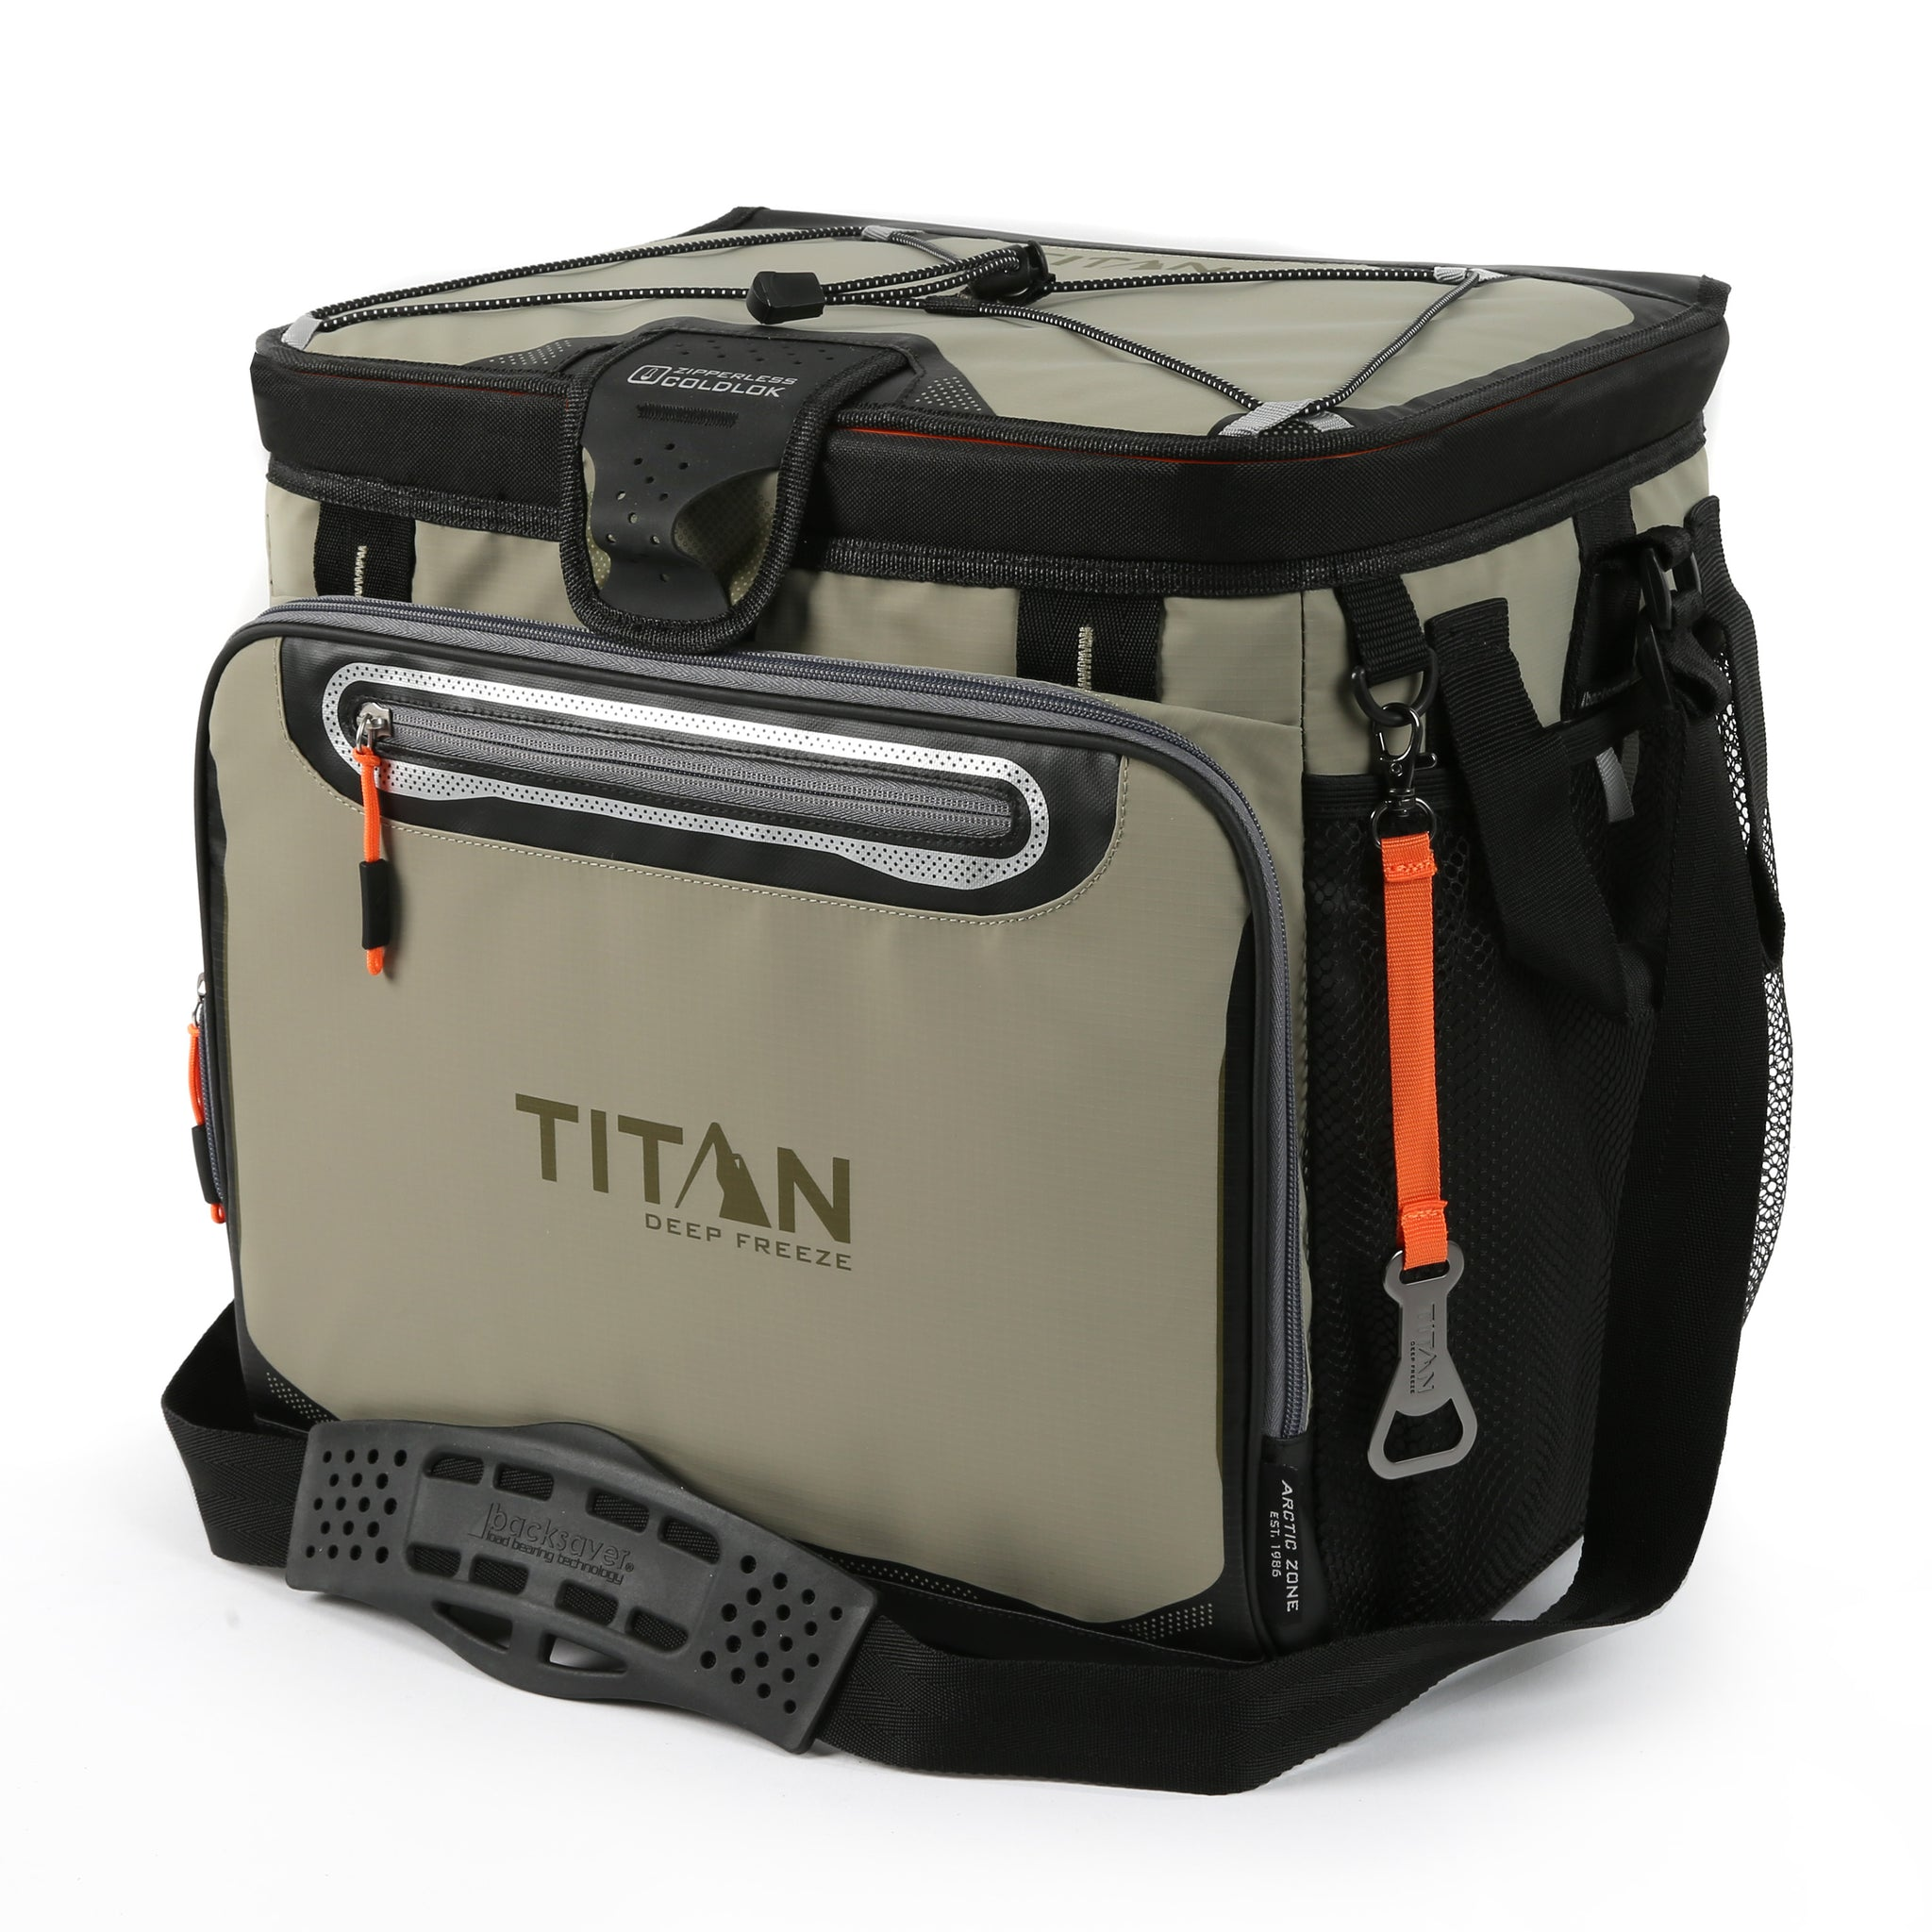 Titan Deep Freeze 40 Can Tall Zipperless Hardbody Cooler